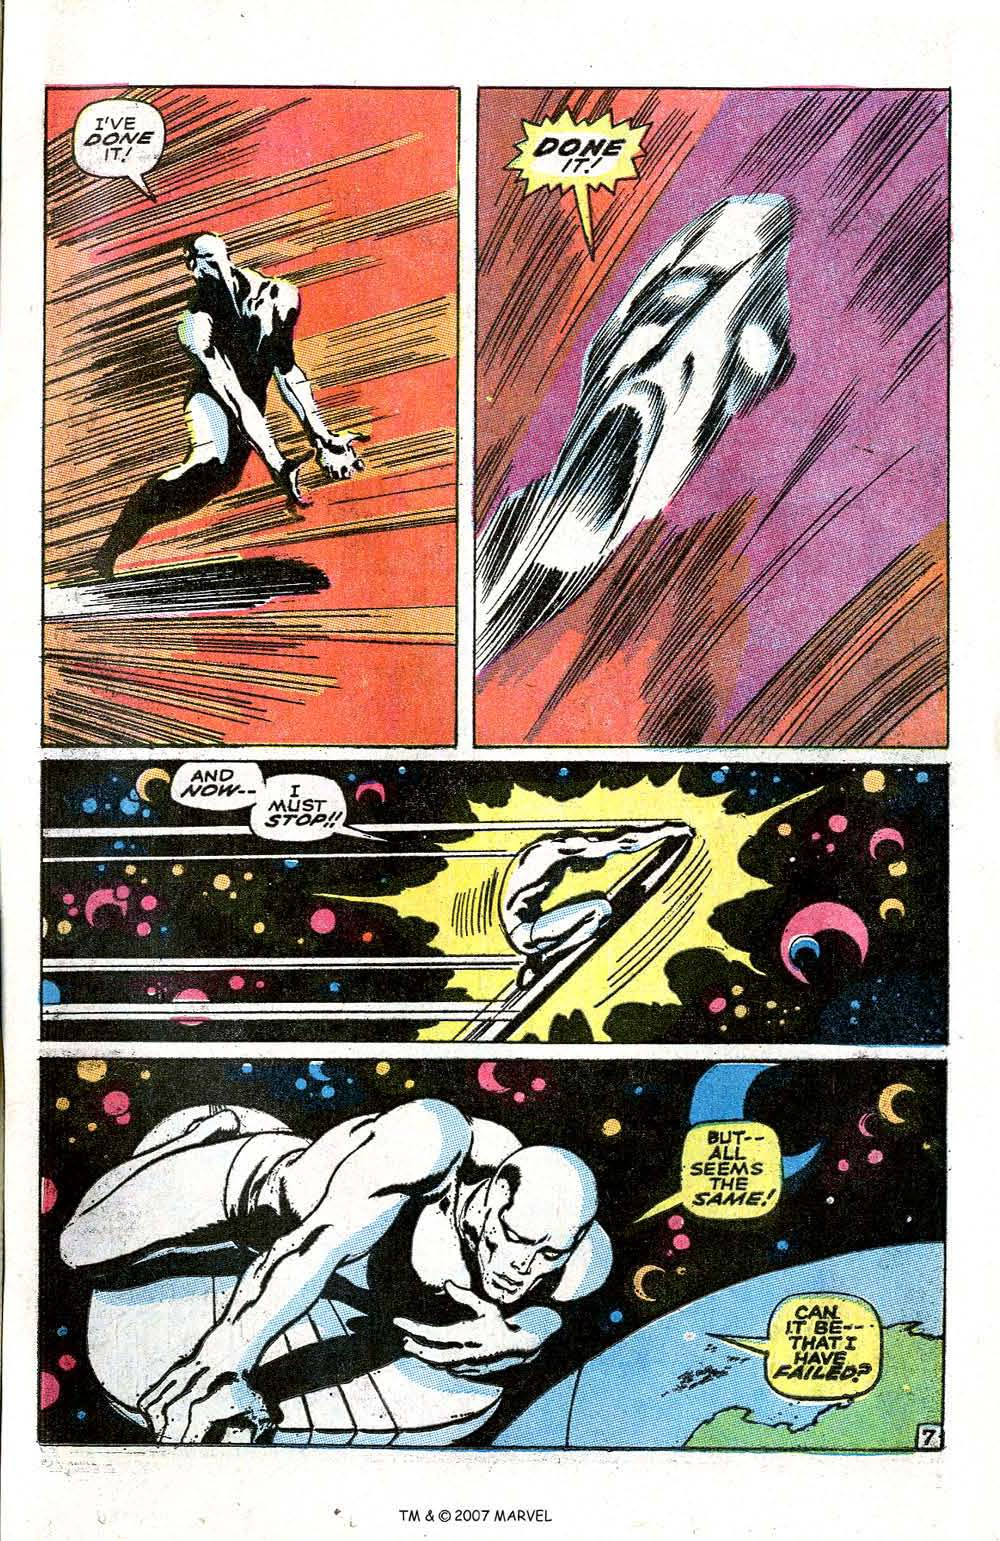 In 'Silver Surfer' (1969) #6, Silver Surfer time travels to the future in order to break Galactus' space barrier around Earth.